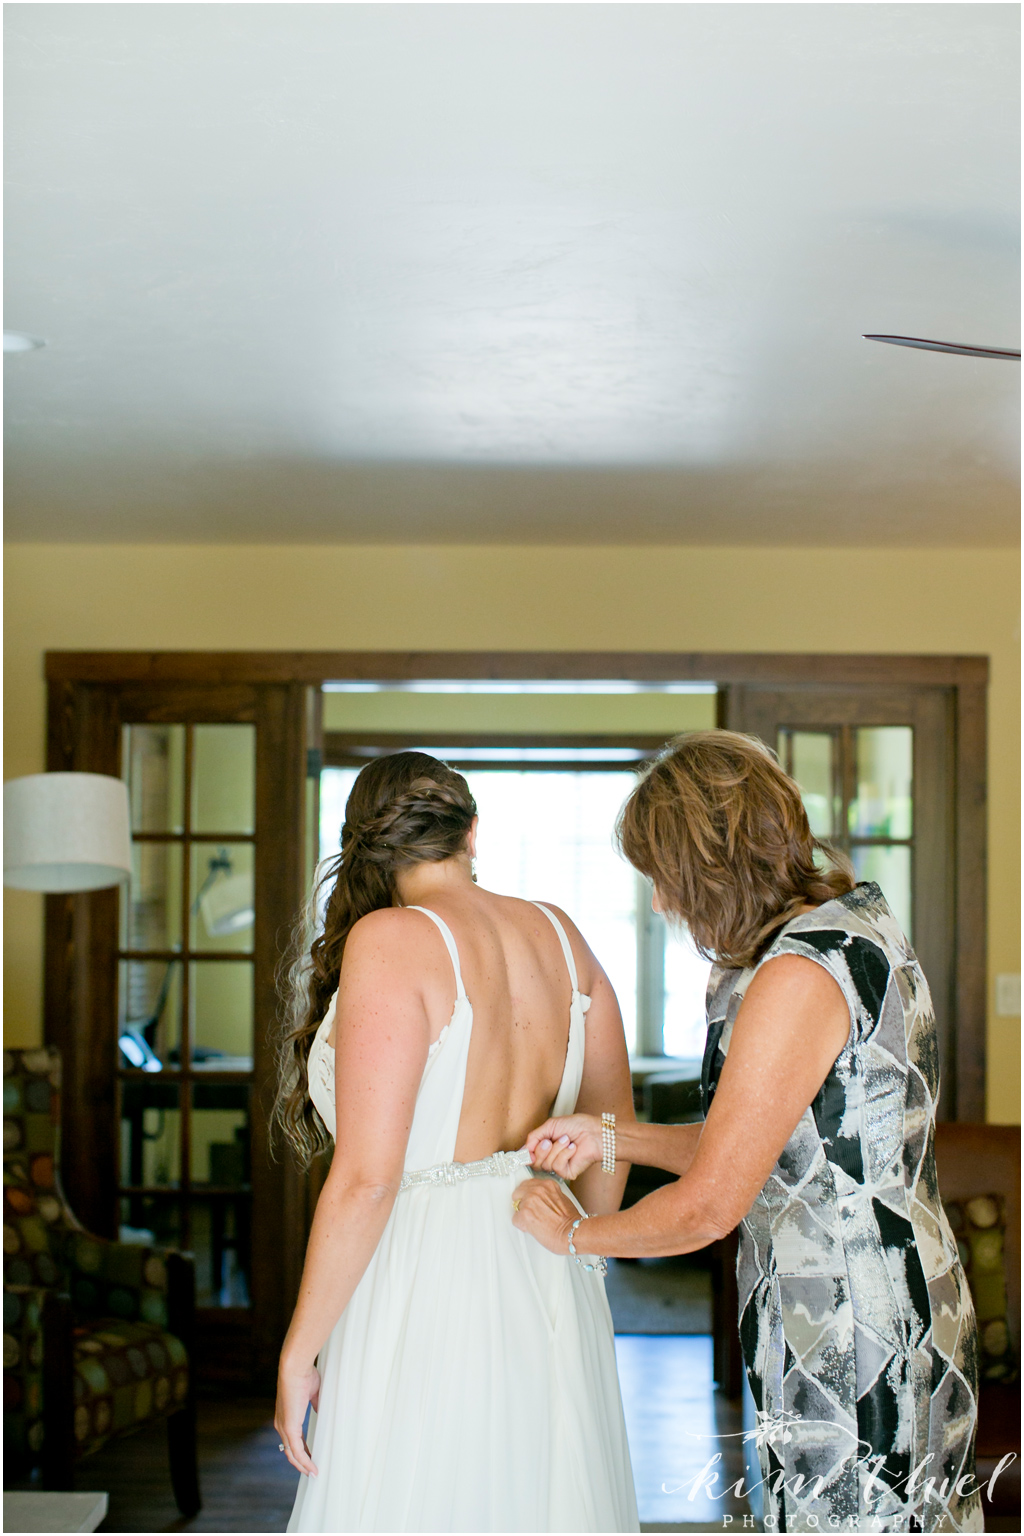 Kim-Thiel-Photography-Gordon-Lodge-Wedding-15